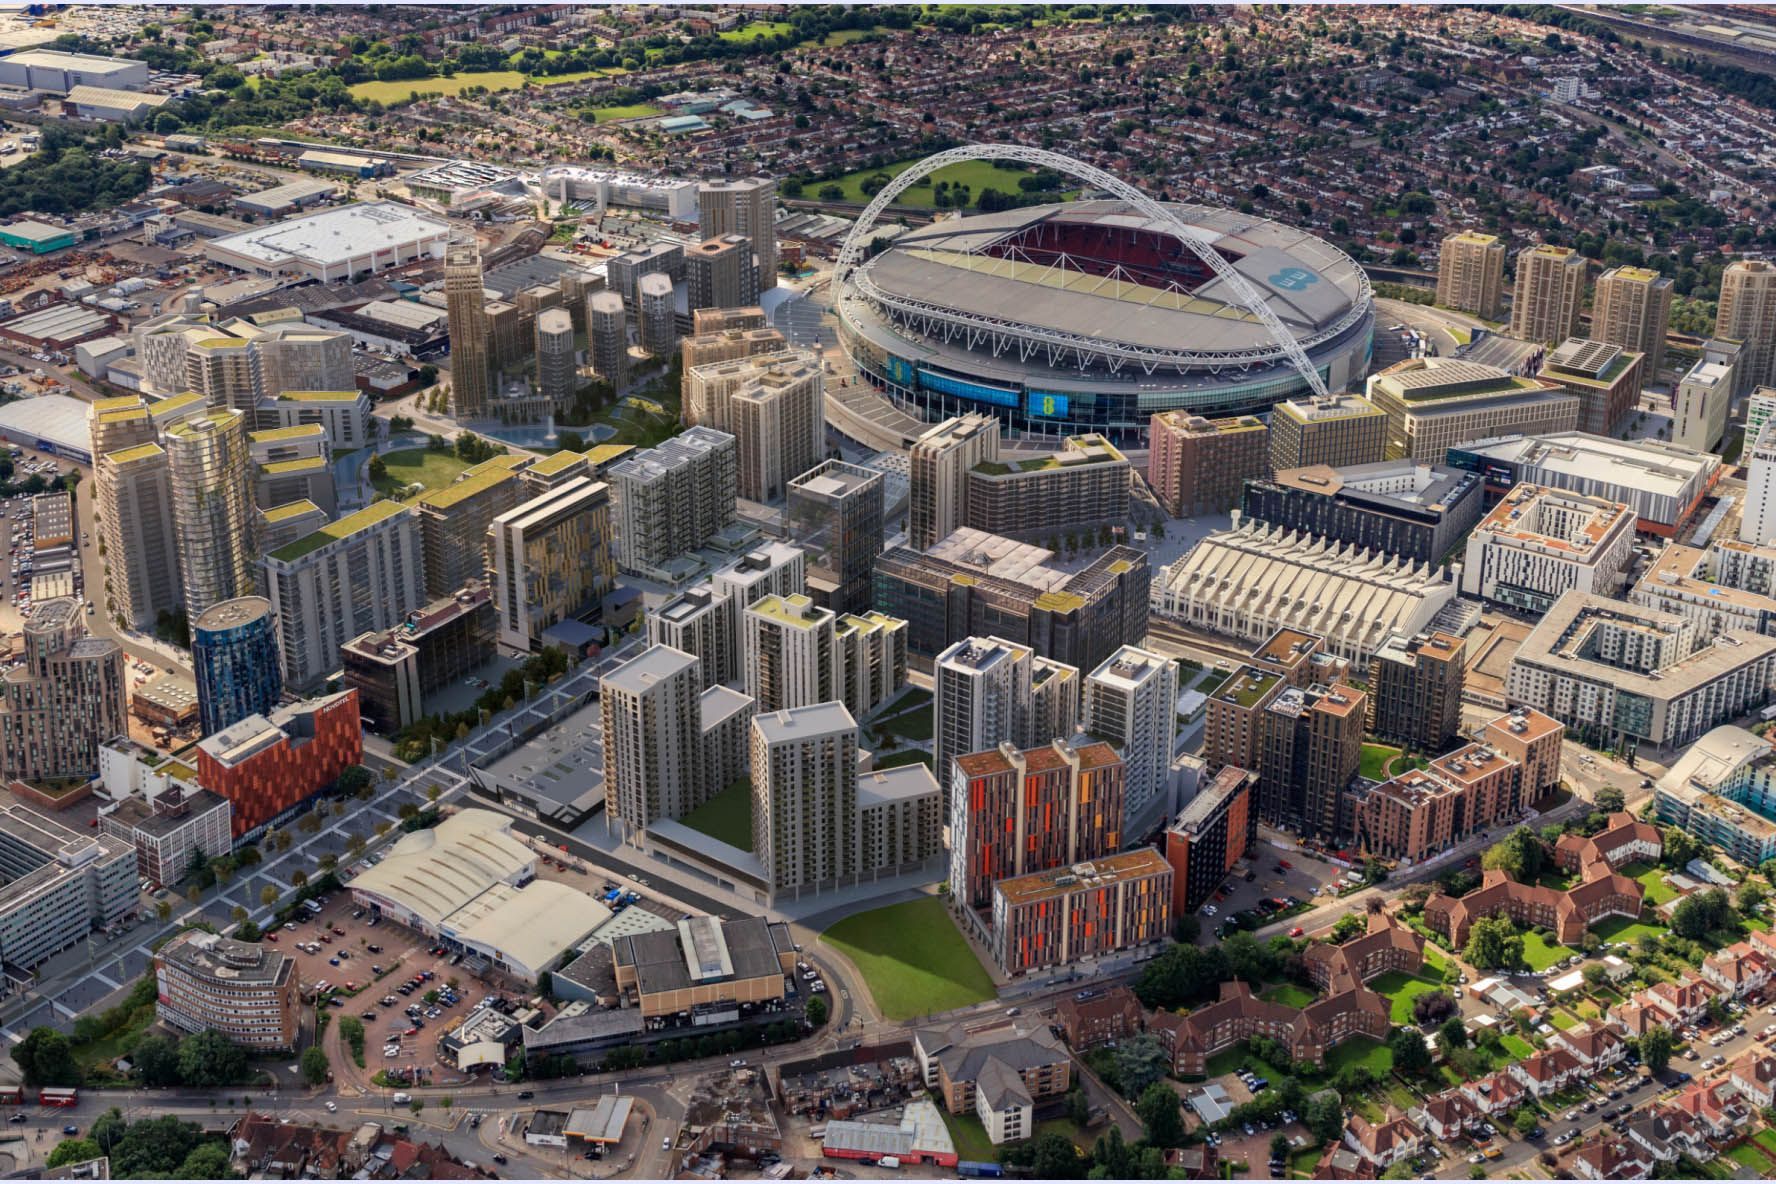 A visual of the Quintain development site for Wembley Park near London